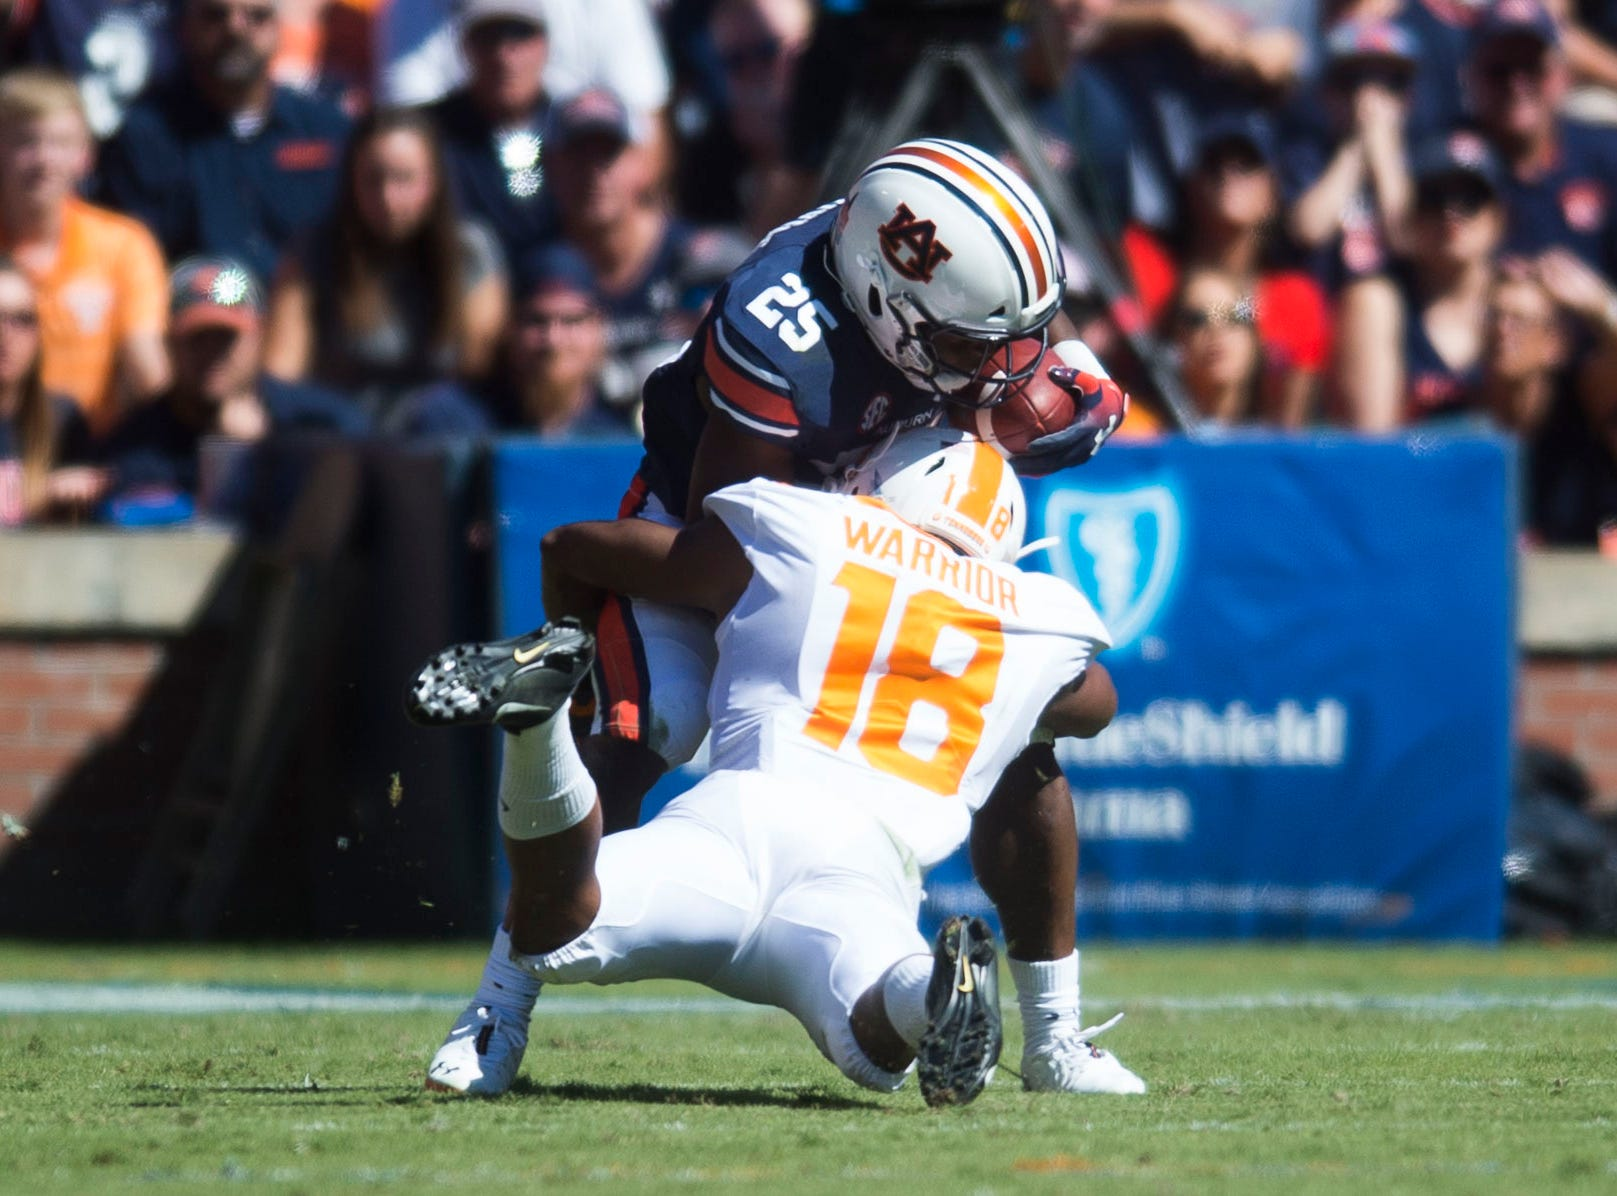 Tennessee defensive back Nigel Warrior (18) takes down Auburn running back Shaun Shivers (25) during a game between Tennessee and Auburn at Jordan-Hare Stadium in Auburn, Ala. Saturday, Oct. 13, 2018.